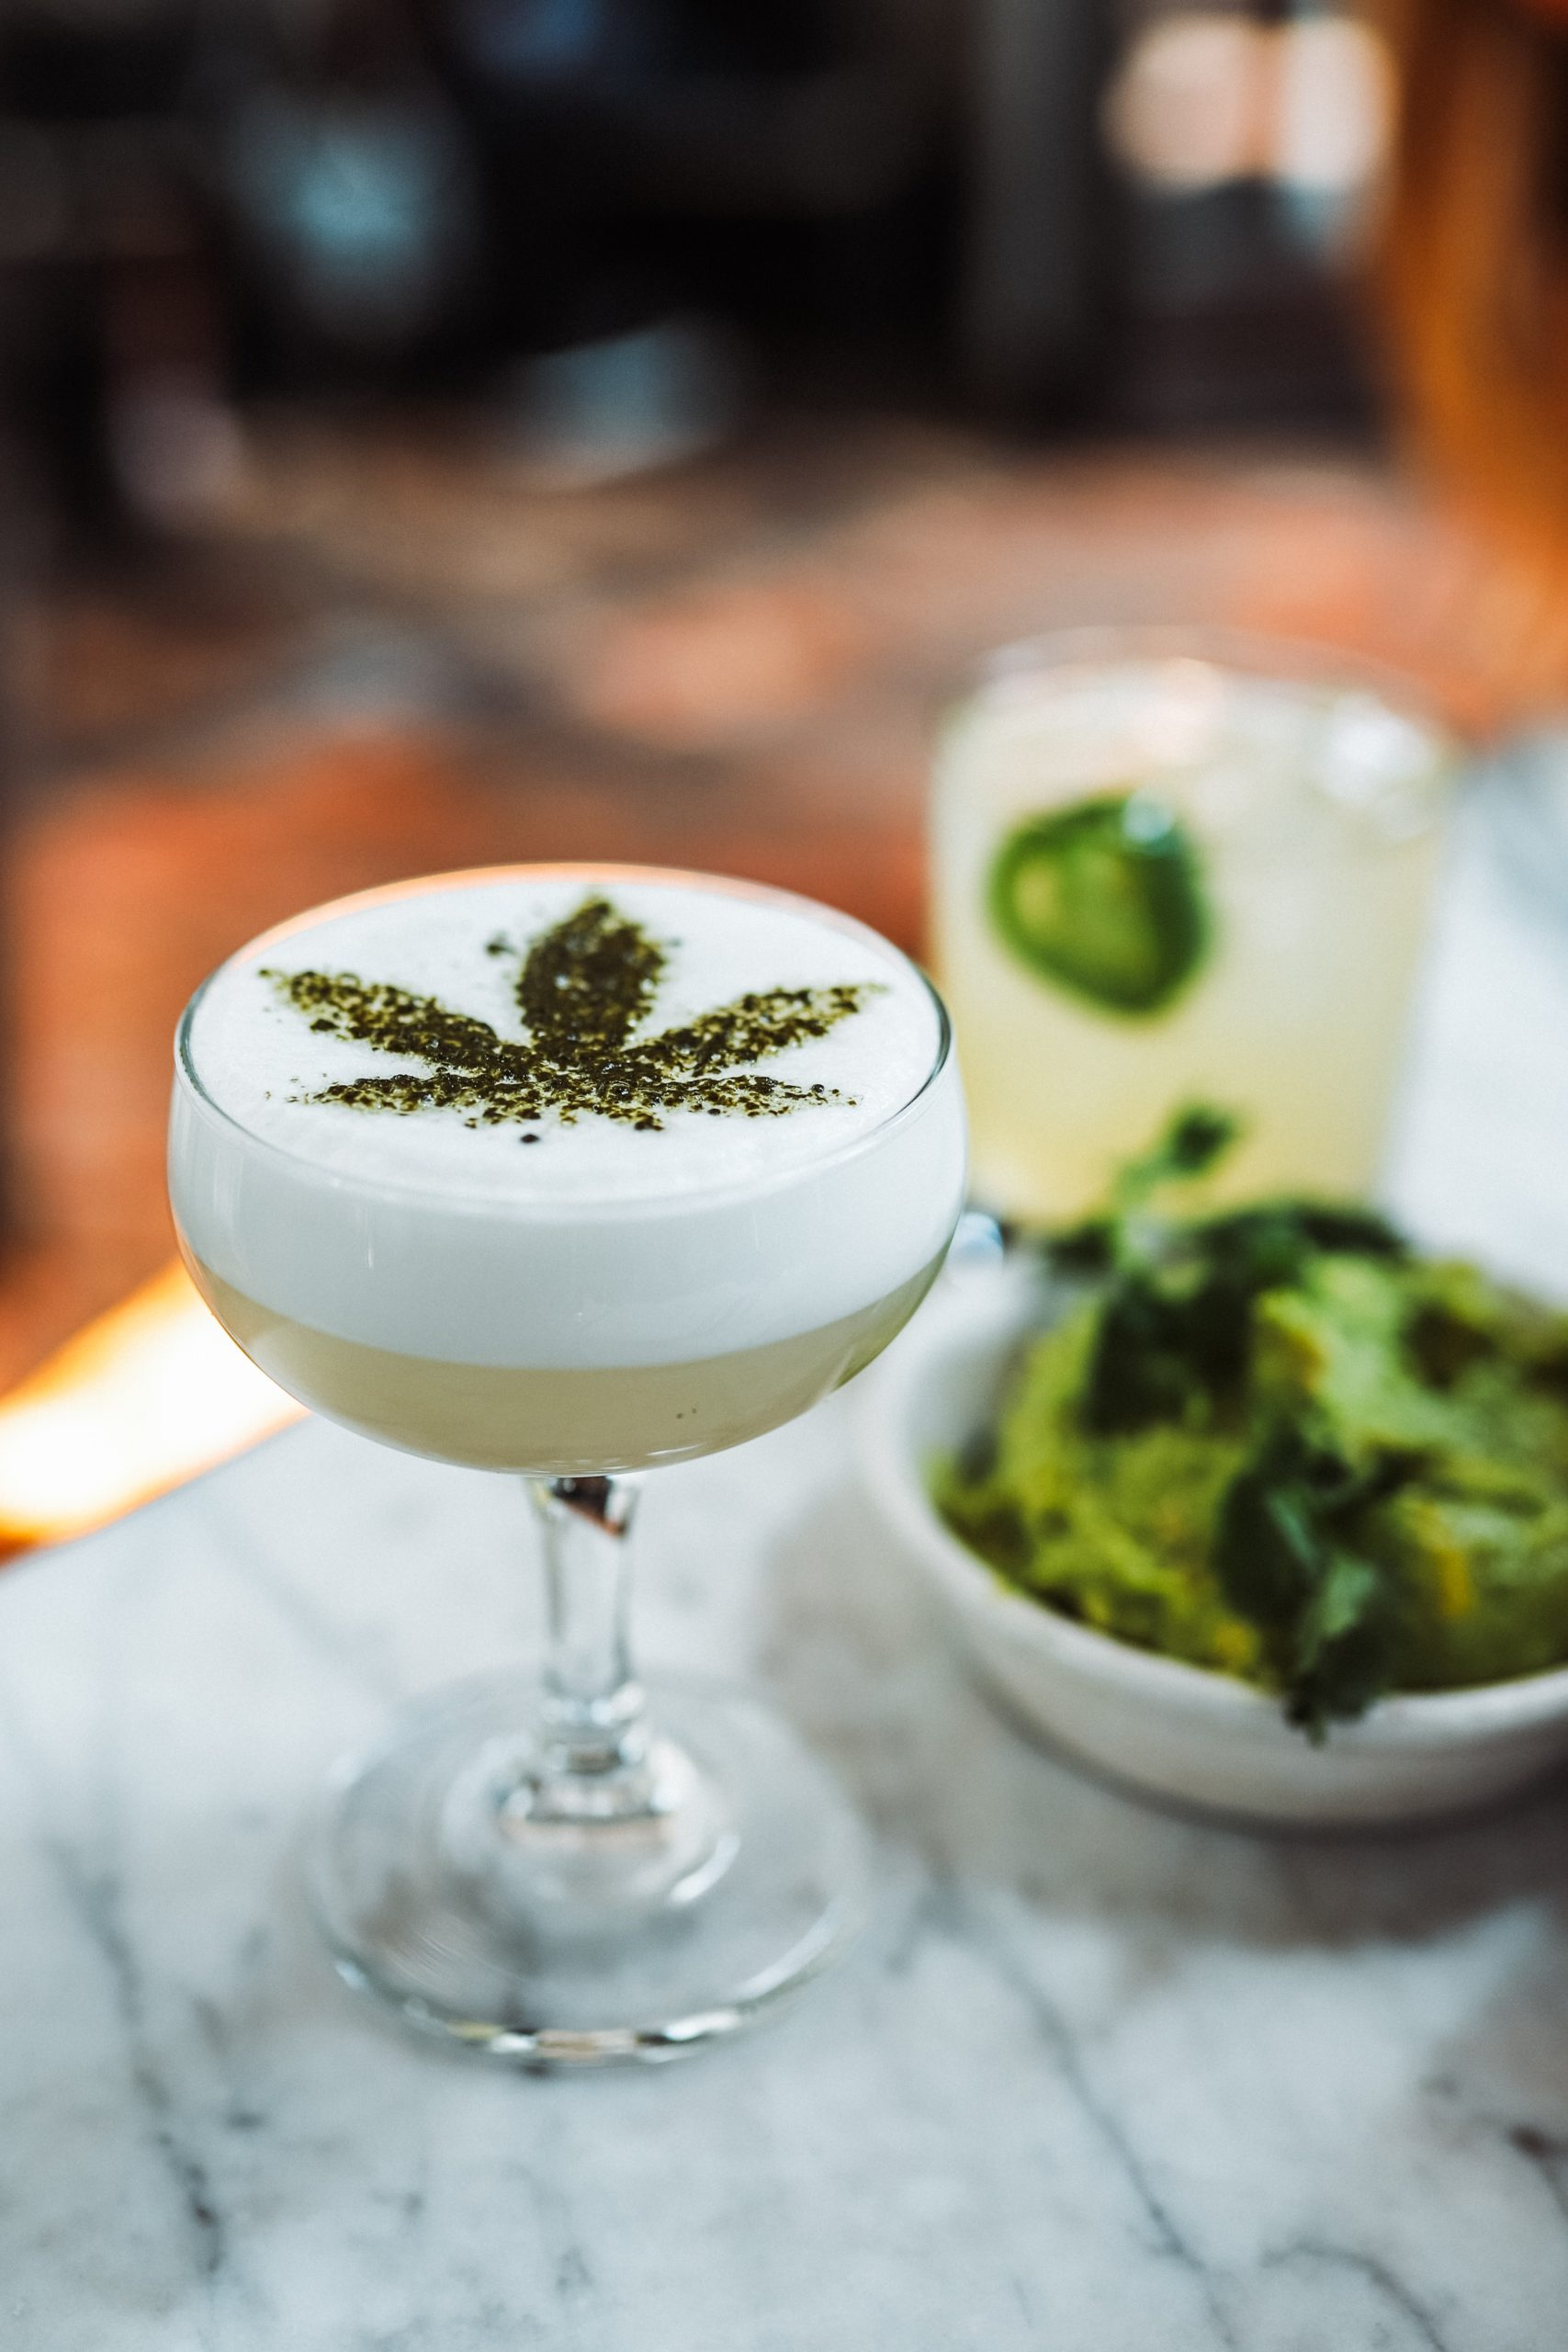 The Valens Company Launches White Label Cannabis-Infused Beverages In Canada